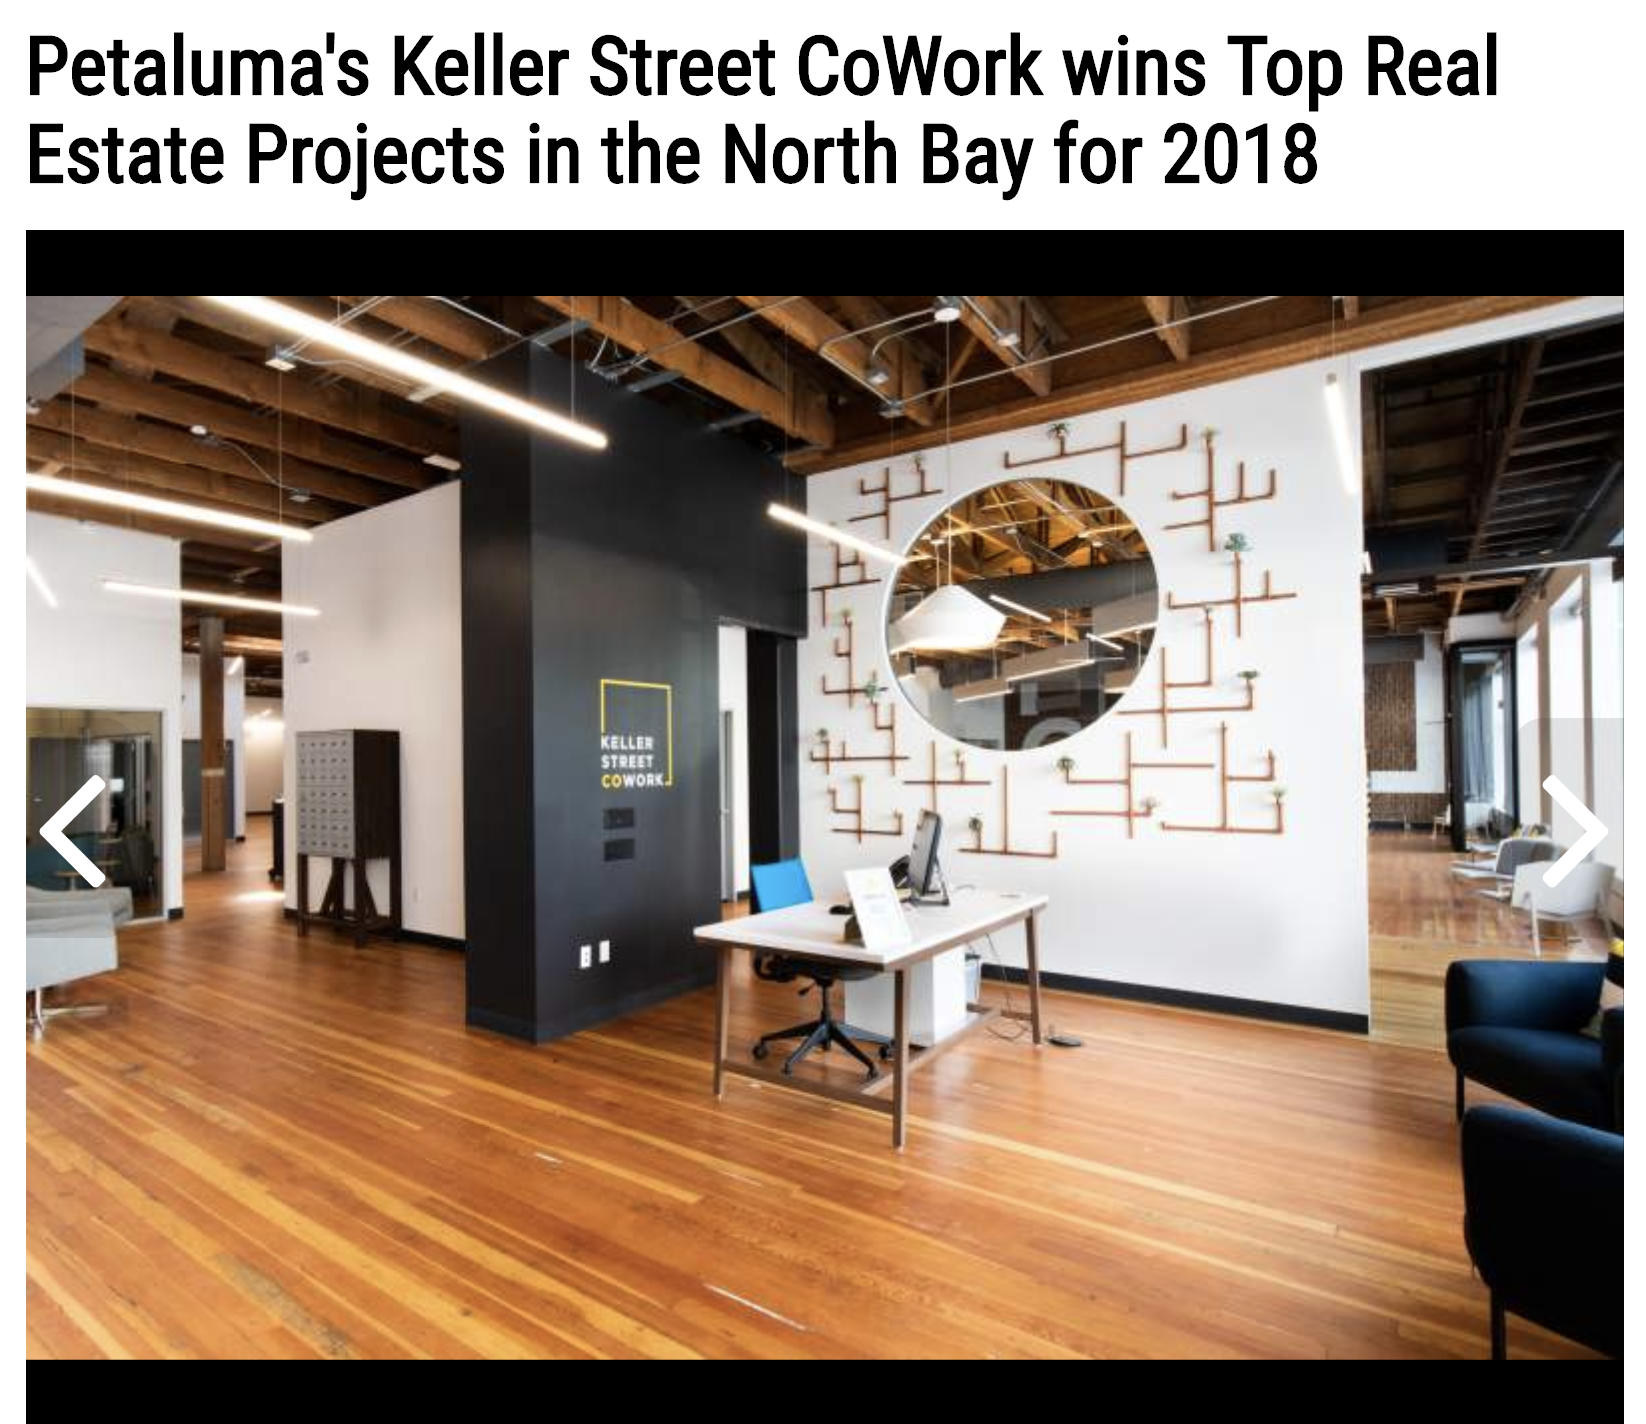 North Bay Business Journal - Keller Street CoWork wins Top Real Estate Projects for 2018